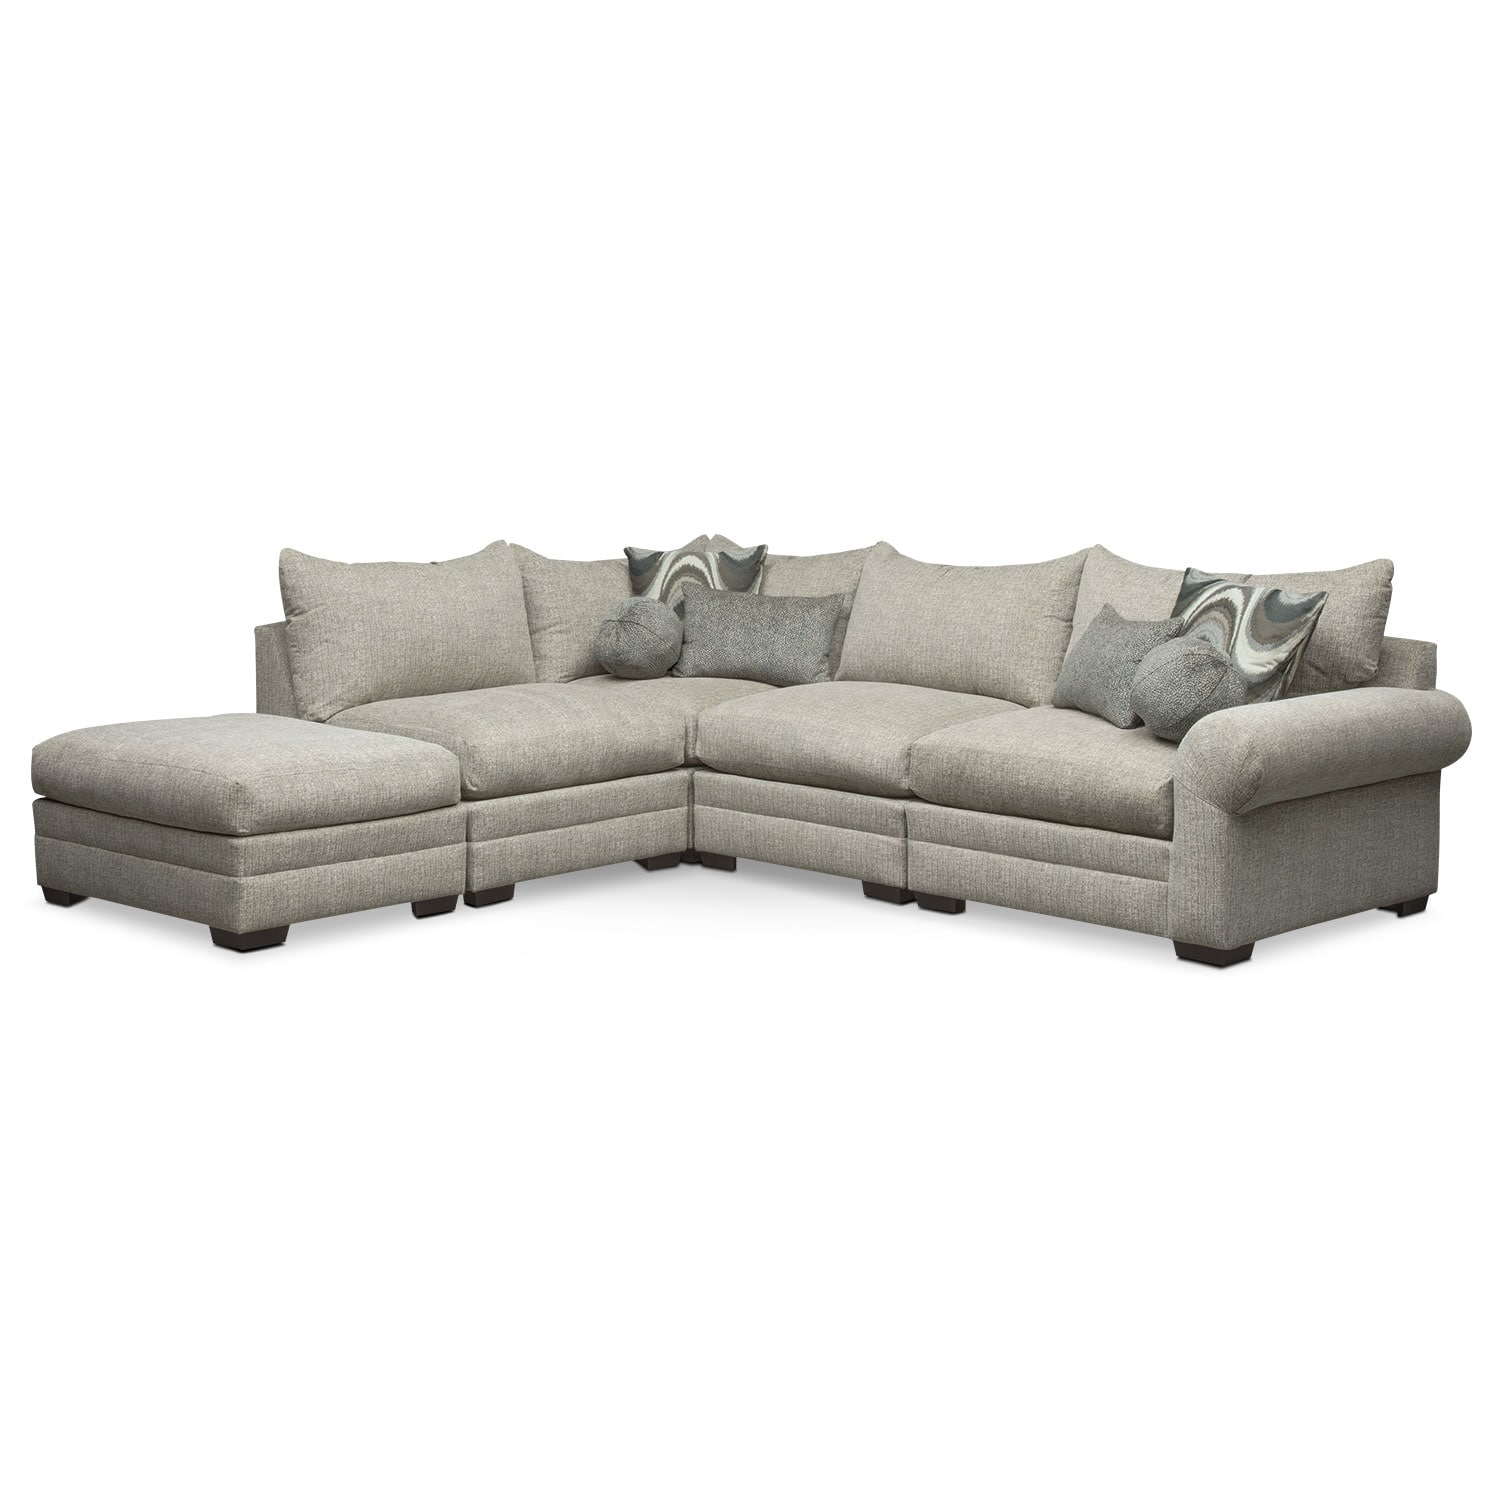 Living Room Furniture - Wilshire 5-Piece Left-Facing Sectional - Gray